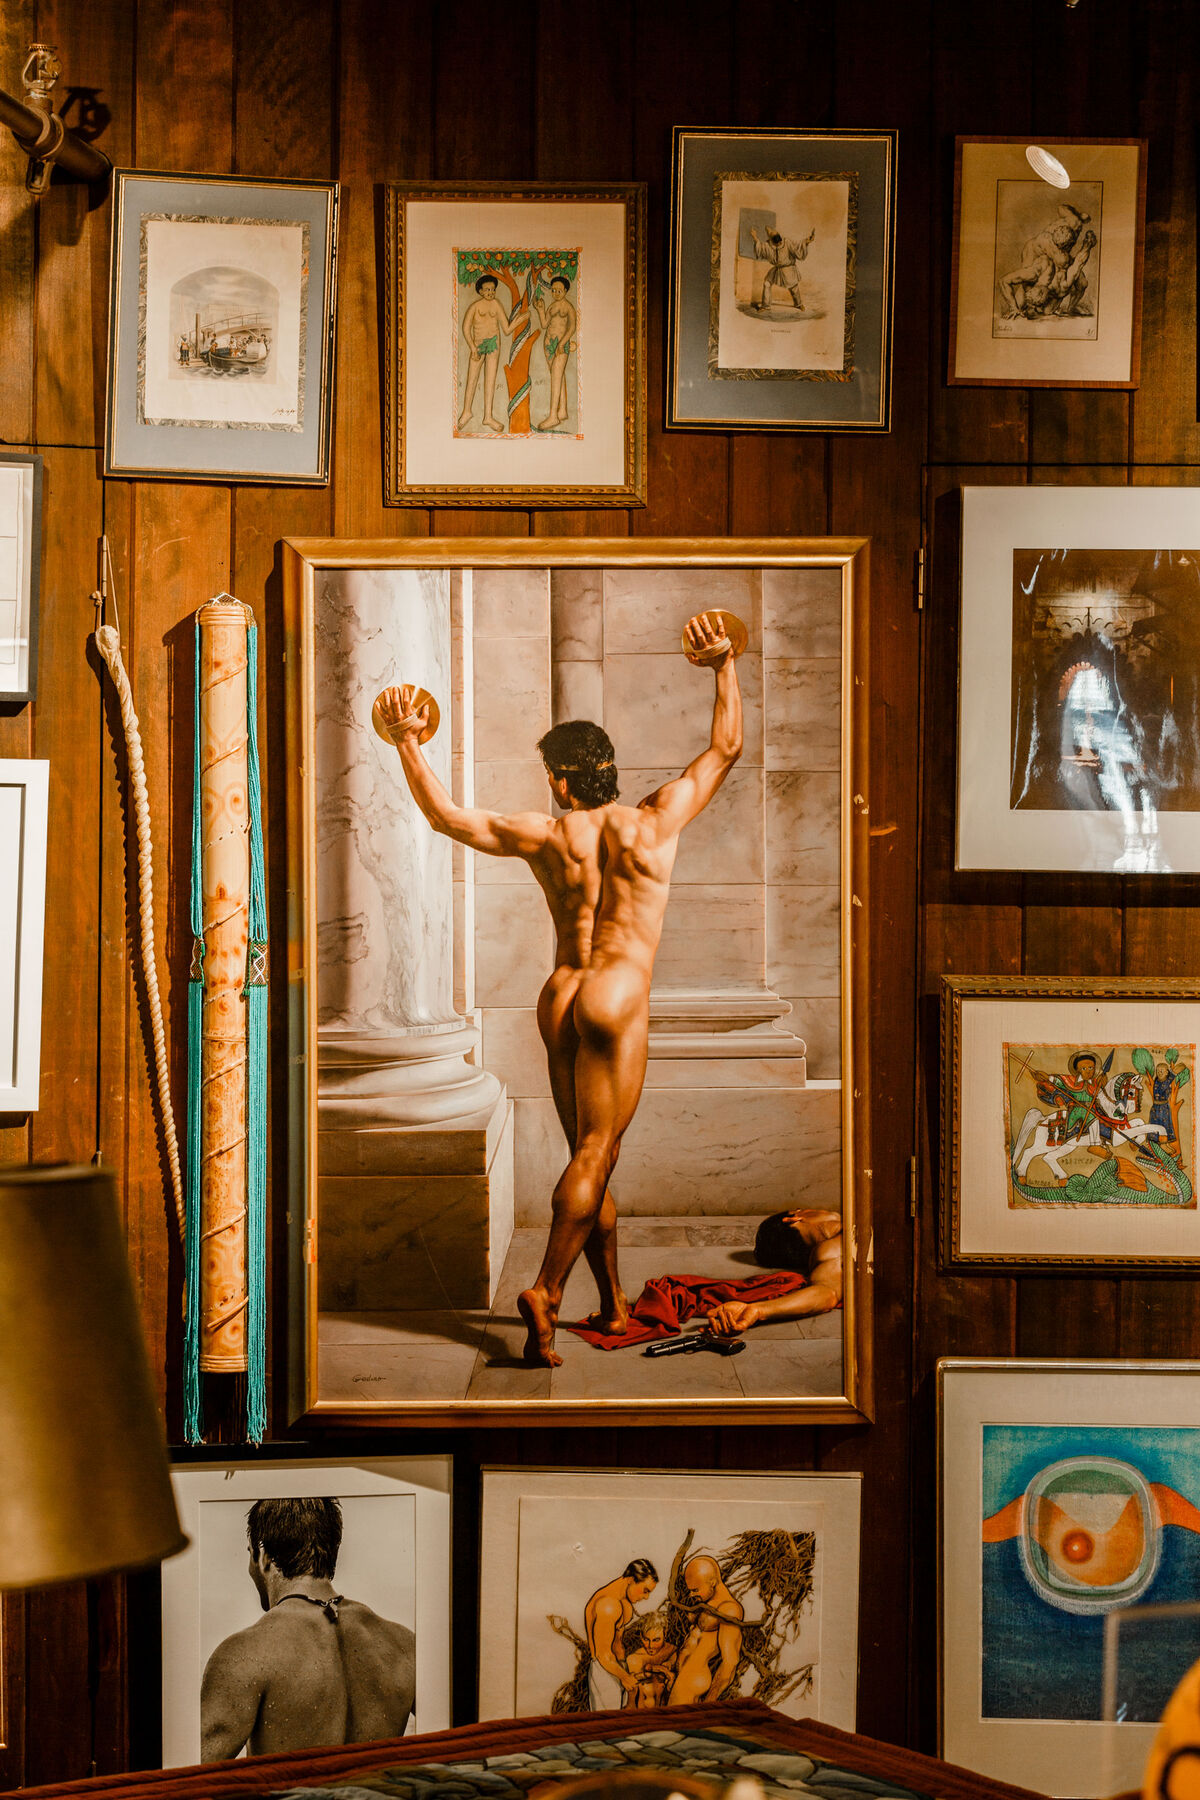 Victor Gadino's classically-inflected Dionysus (1997) holds pride of place on a salon-style wall facing Leslie's bed. Photo by Max Burkhalter for Artsy.